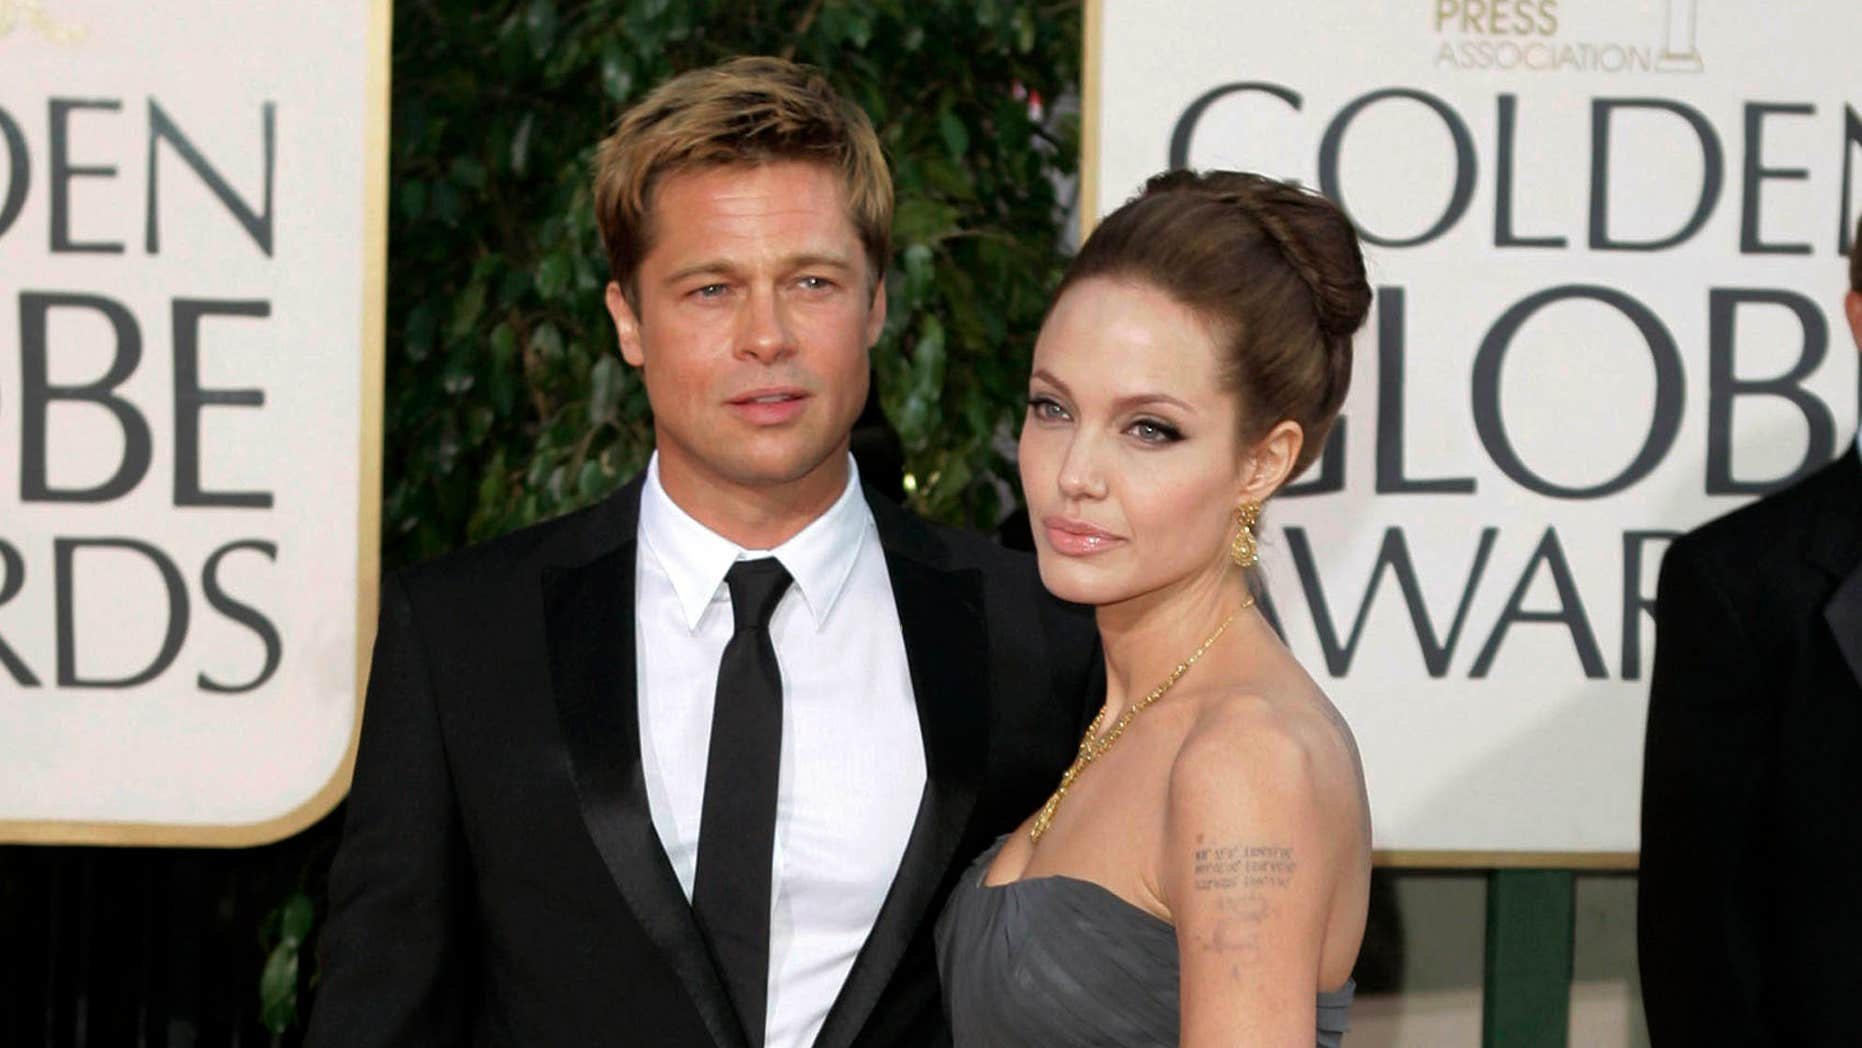 FILE - In this Jan. 15, 2007, file photo, actor Brad Pitt and actress Angelina Jolie arrive for the 64th Annual Golden Globe Awards in Beverly Hills, Calif.